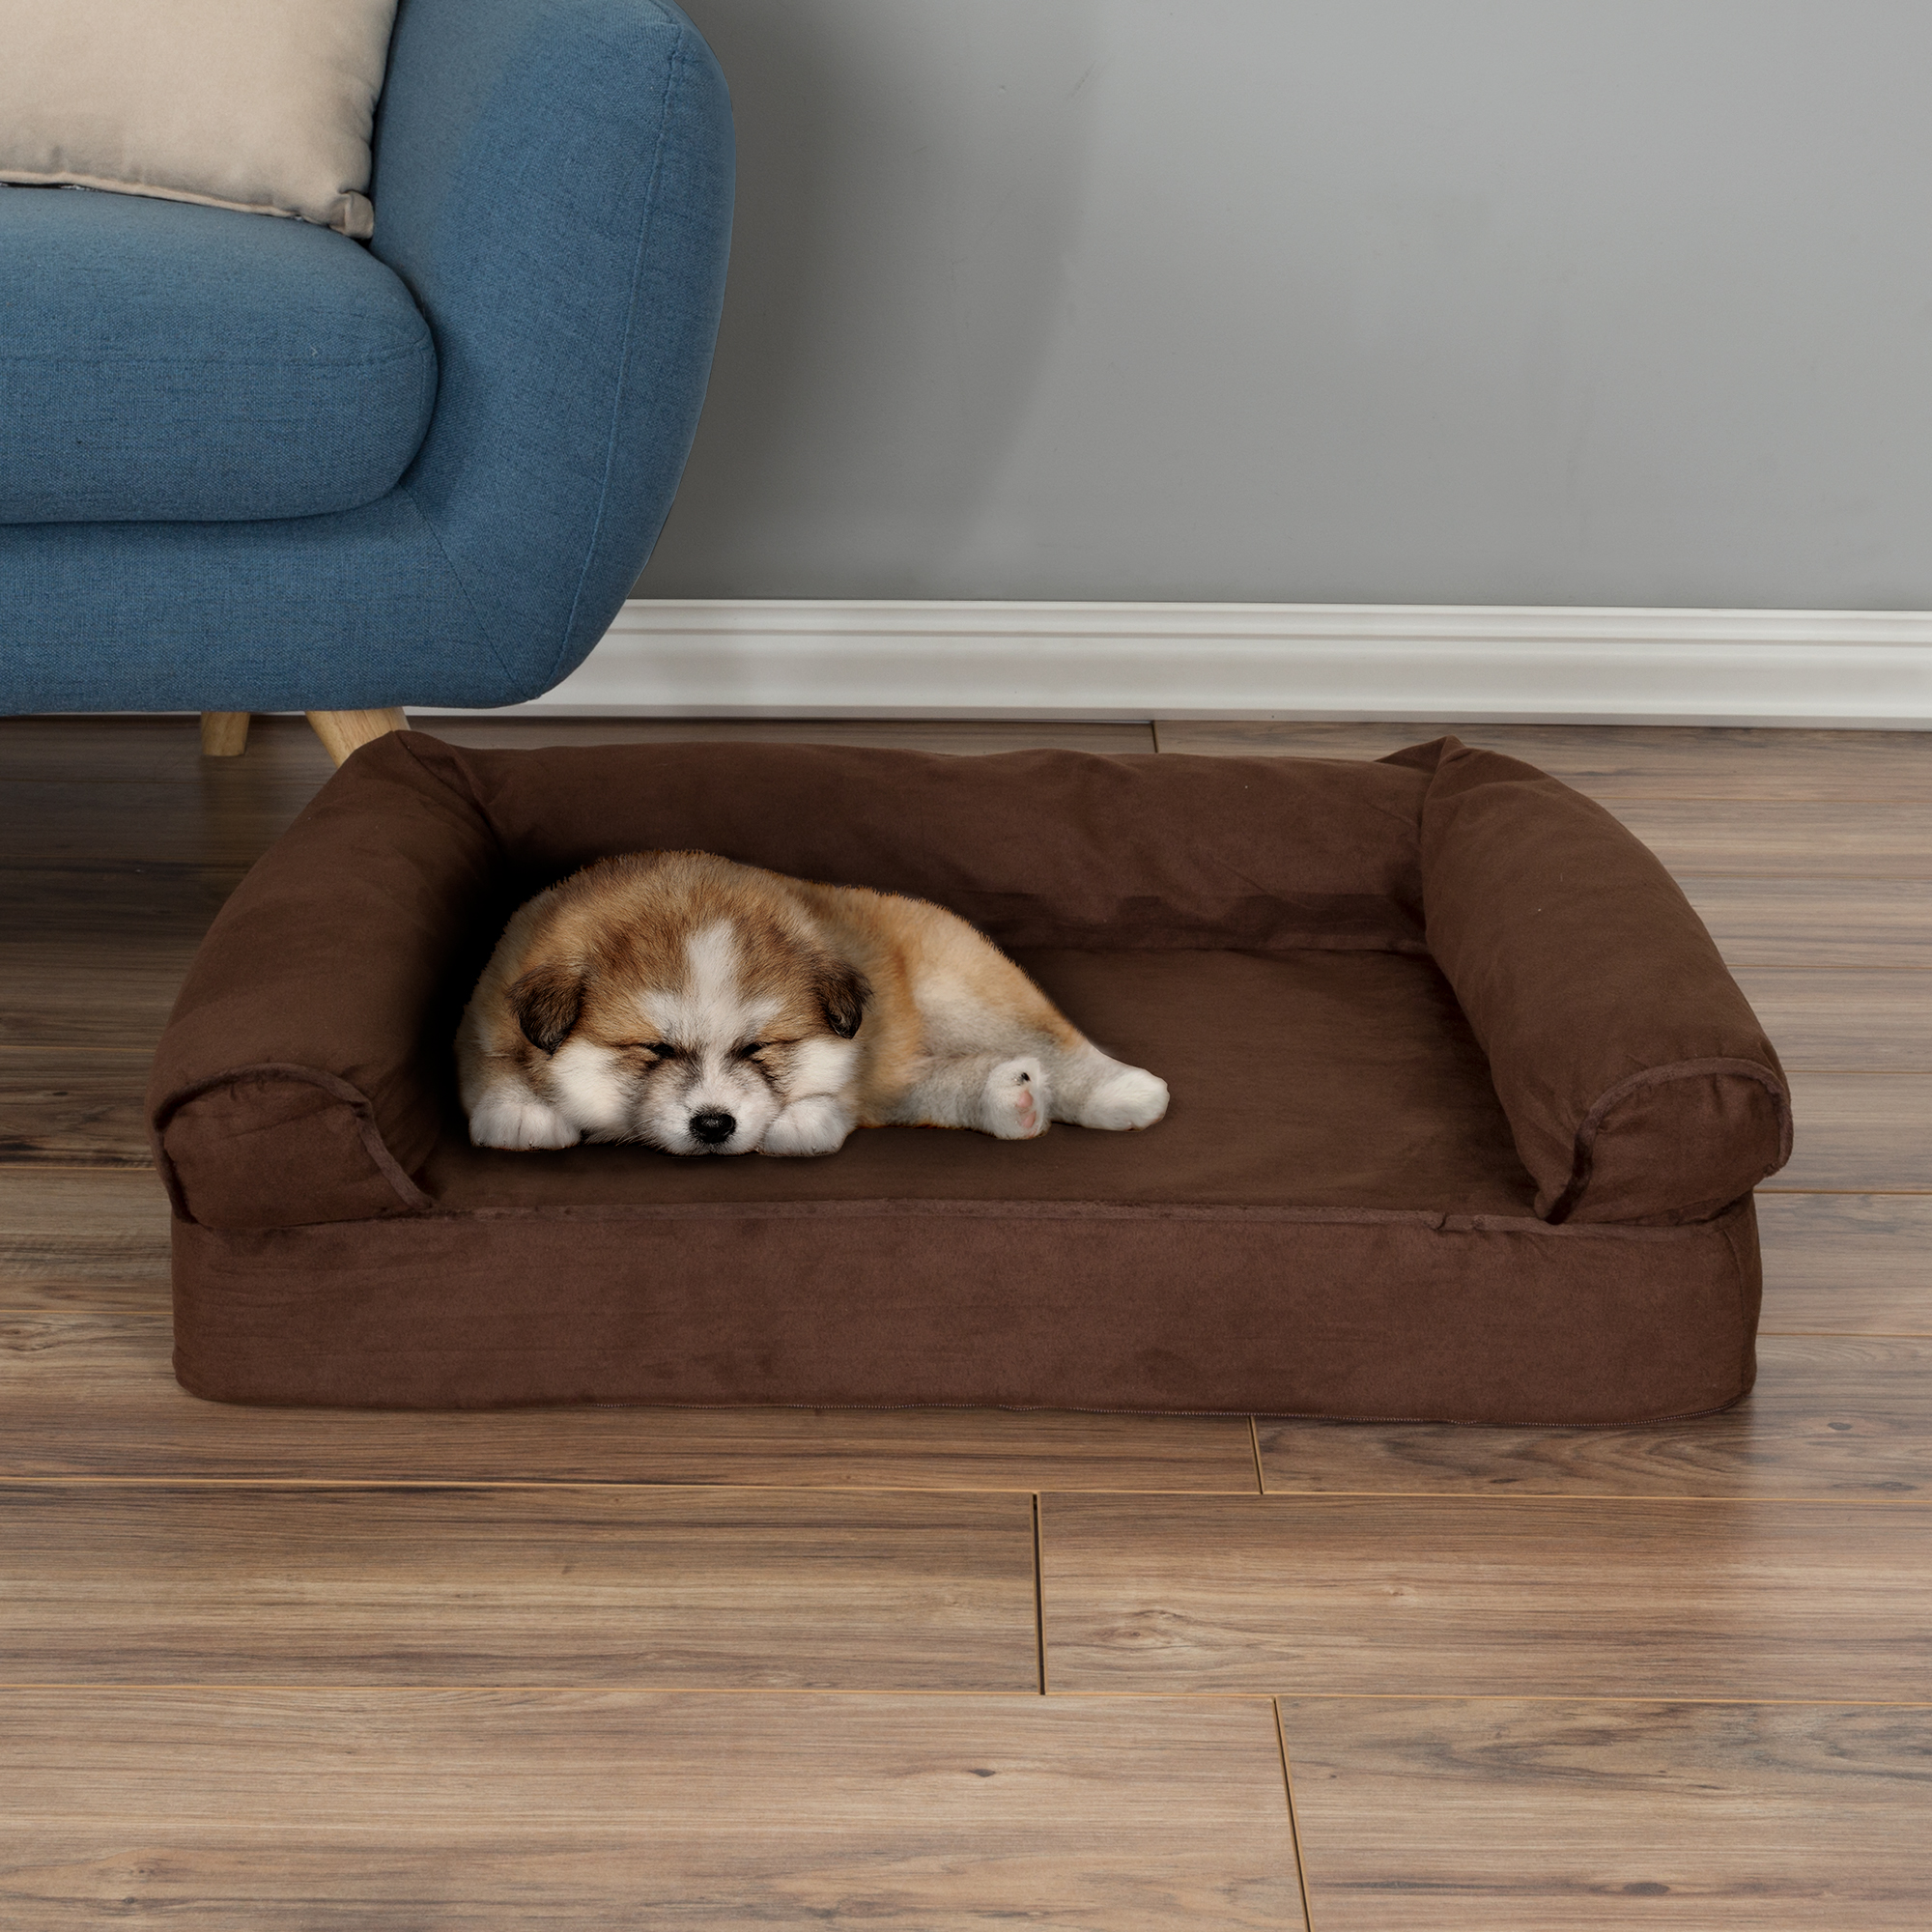 Dog Bed Orthopedic Pet Sofa Bed With Memory Foam And Foam Stuffed Bolsters  30x20.5x7